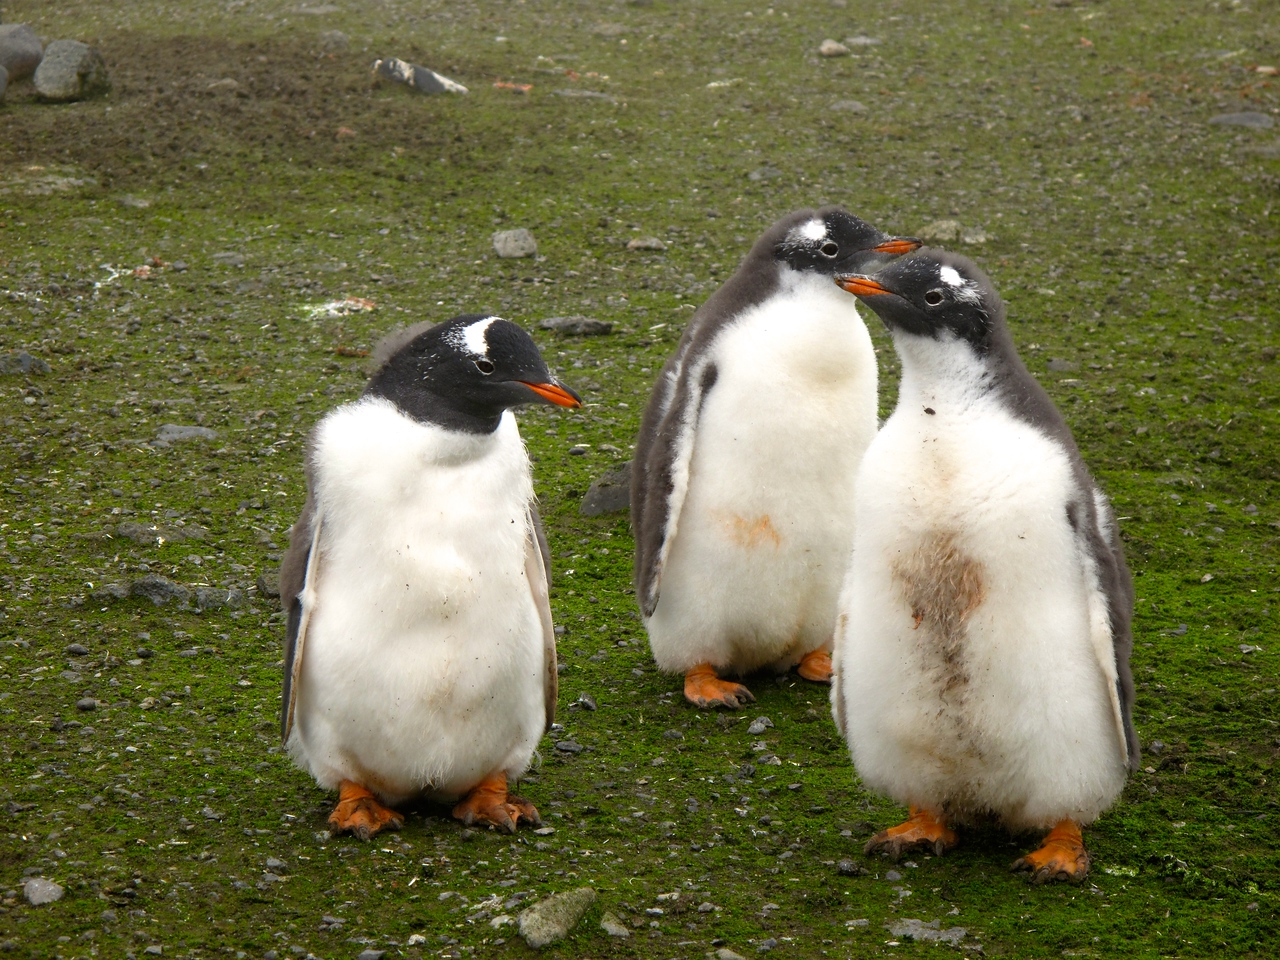 The total world breeding population of Gentoo's is estimated to be over 300,000 pairs.